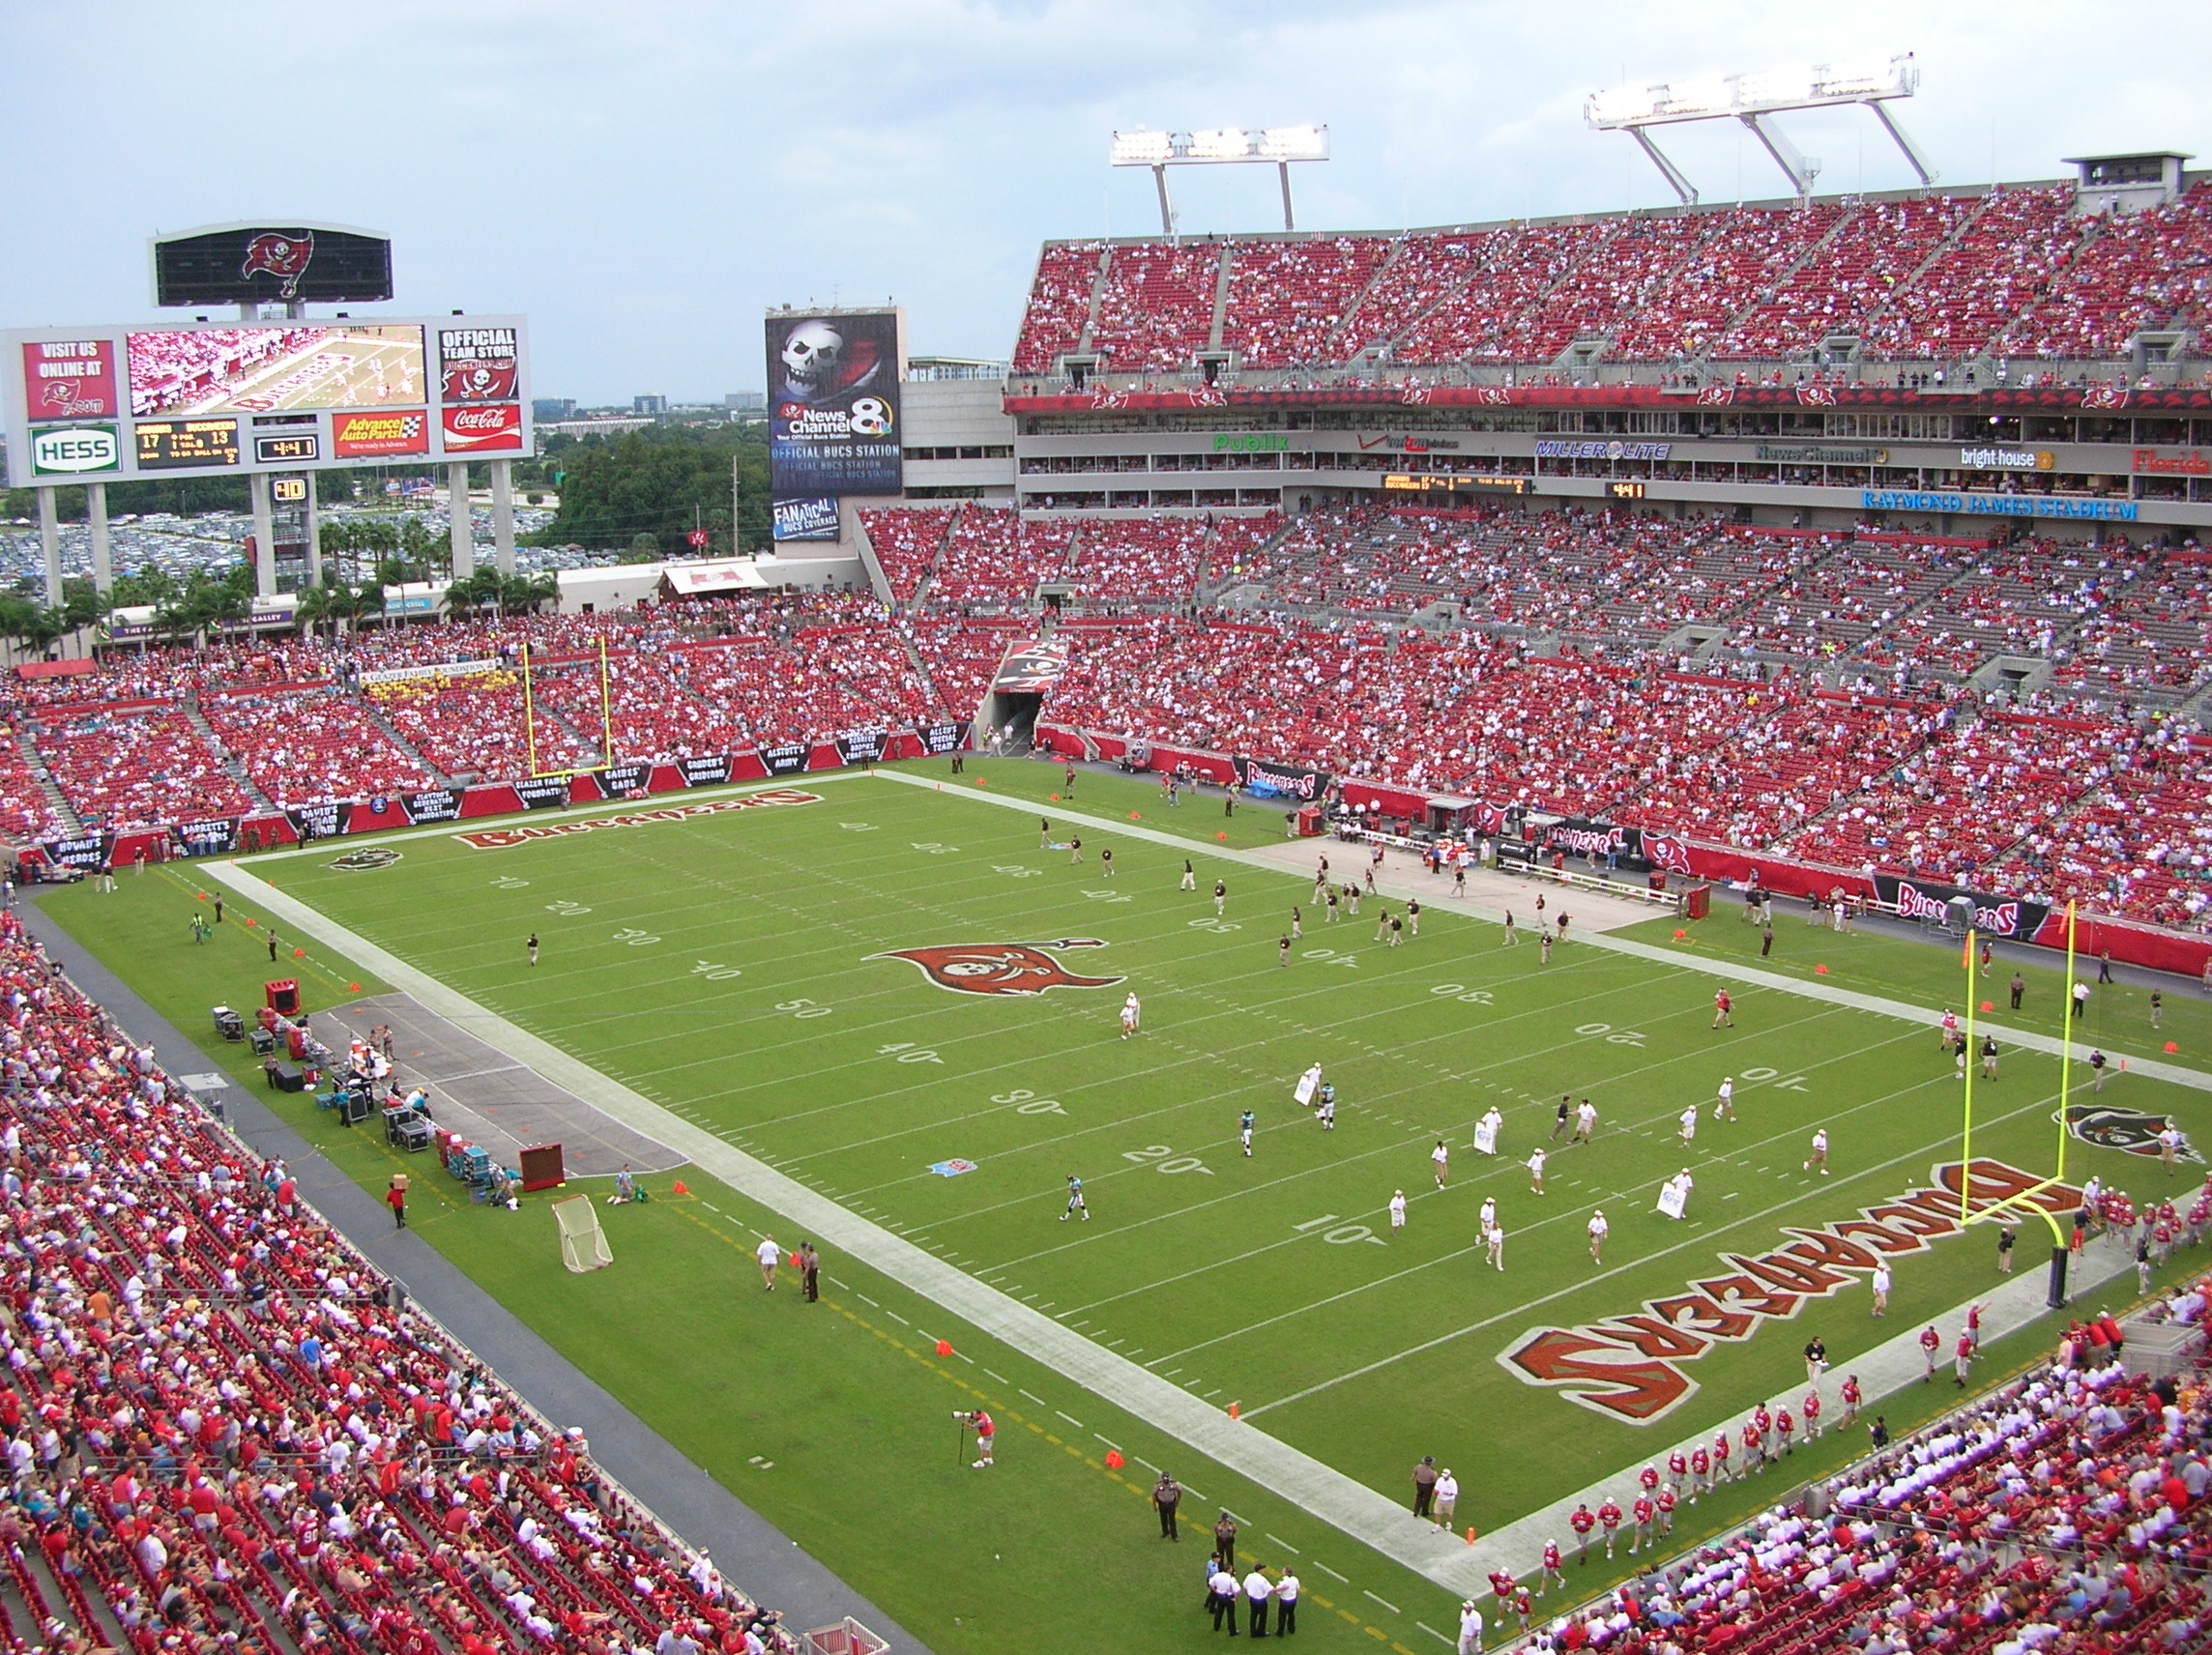 raymond james stadium wikipedia raymond james stadium wikipedia